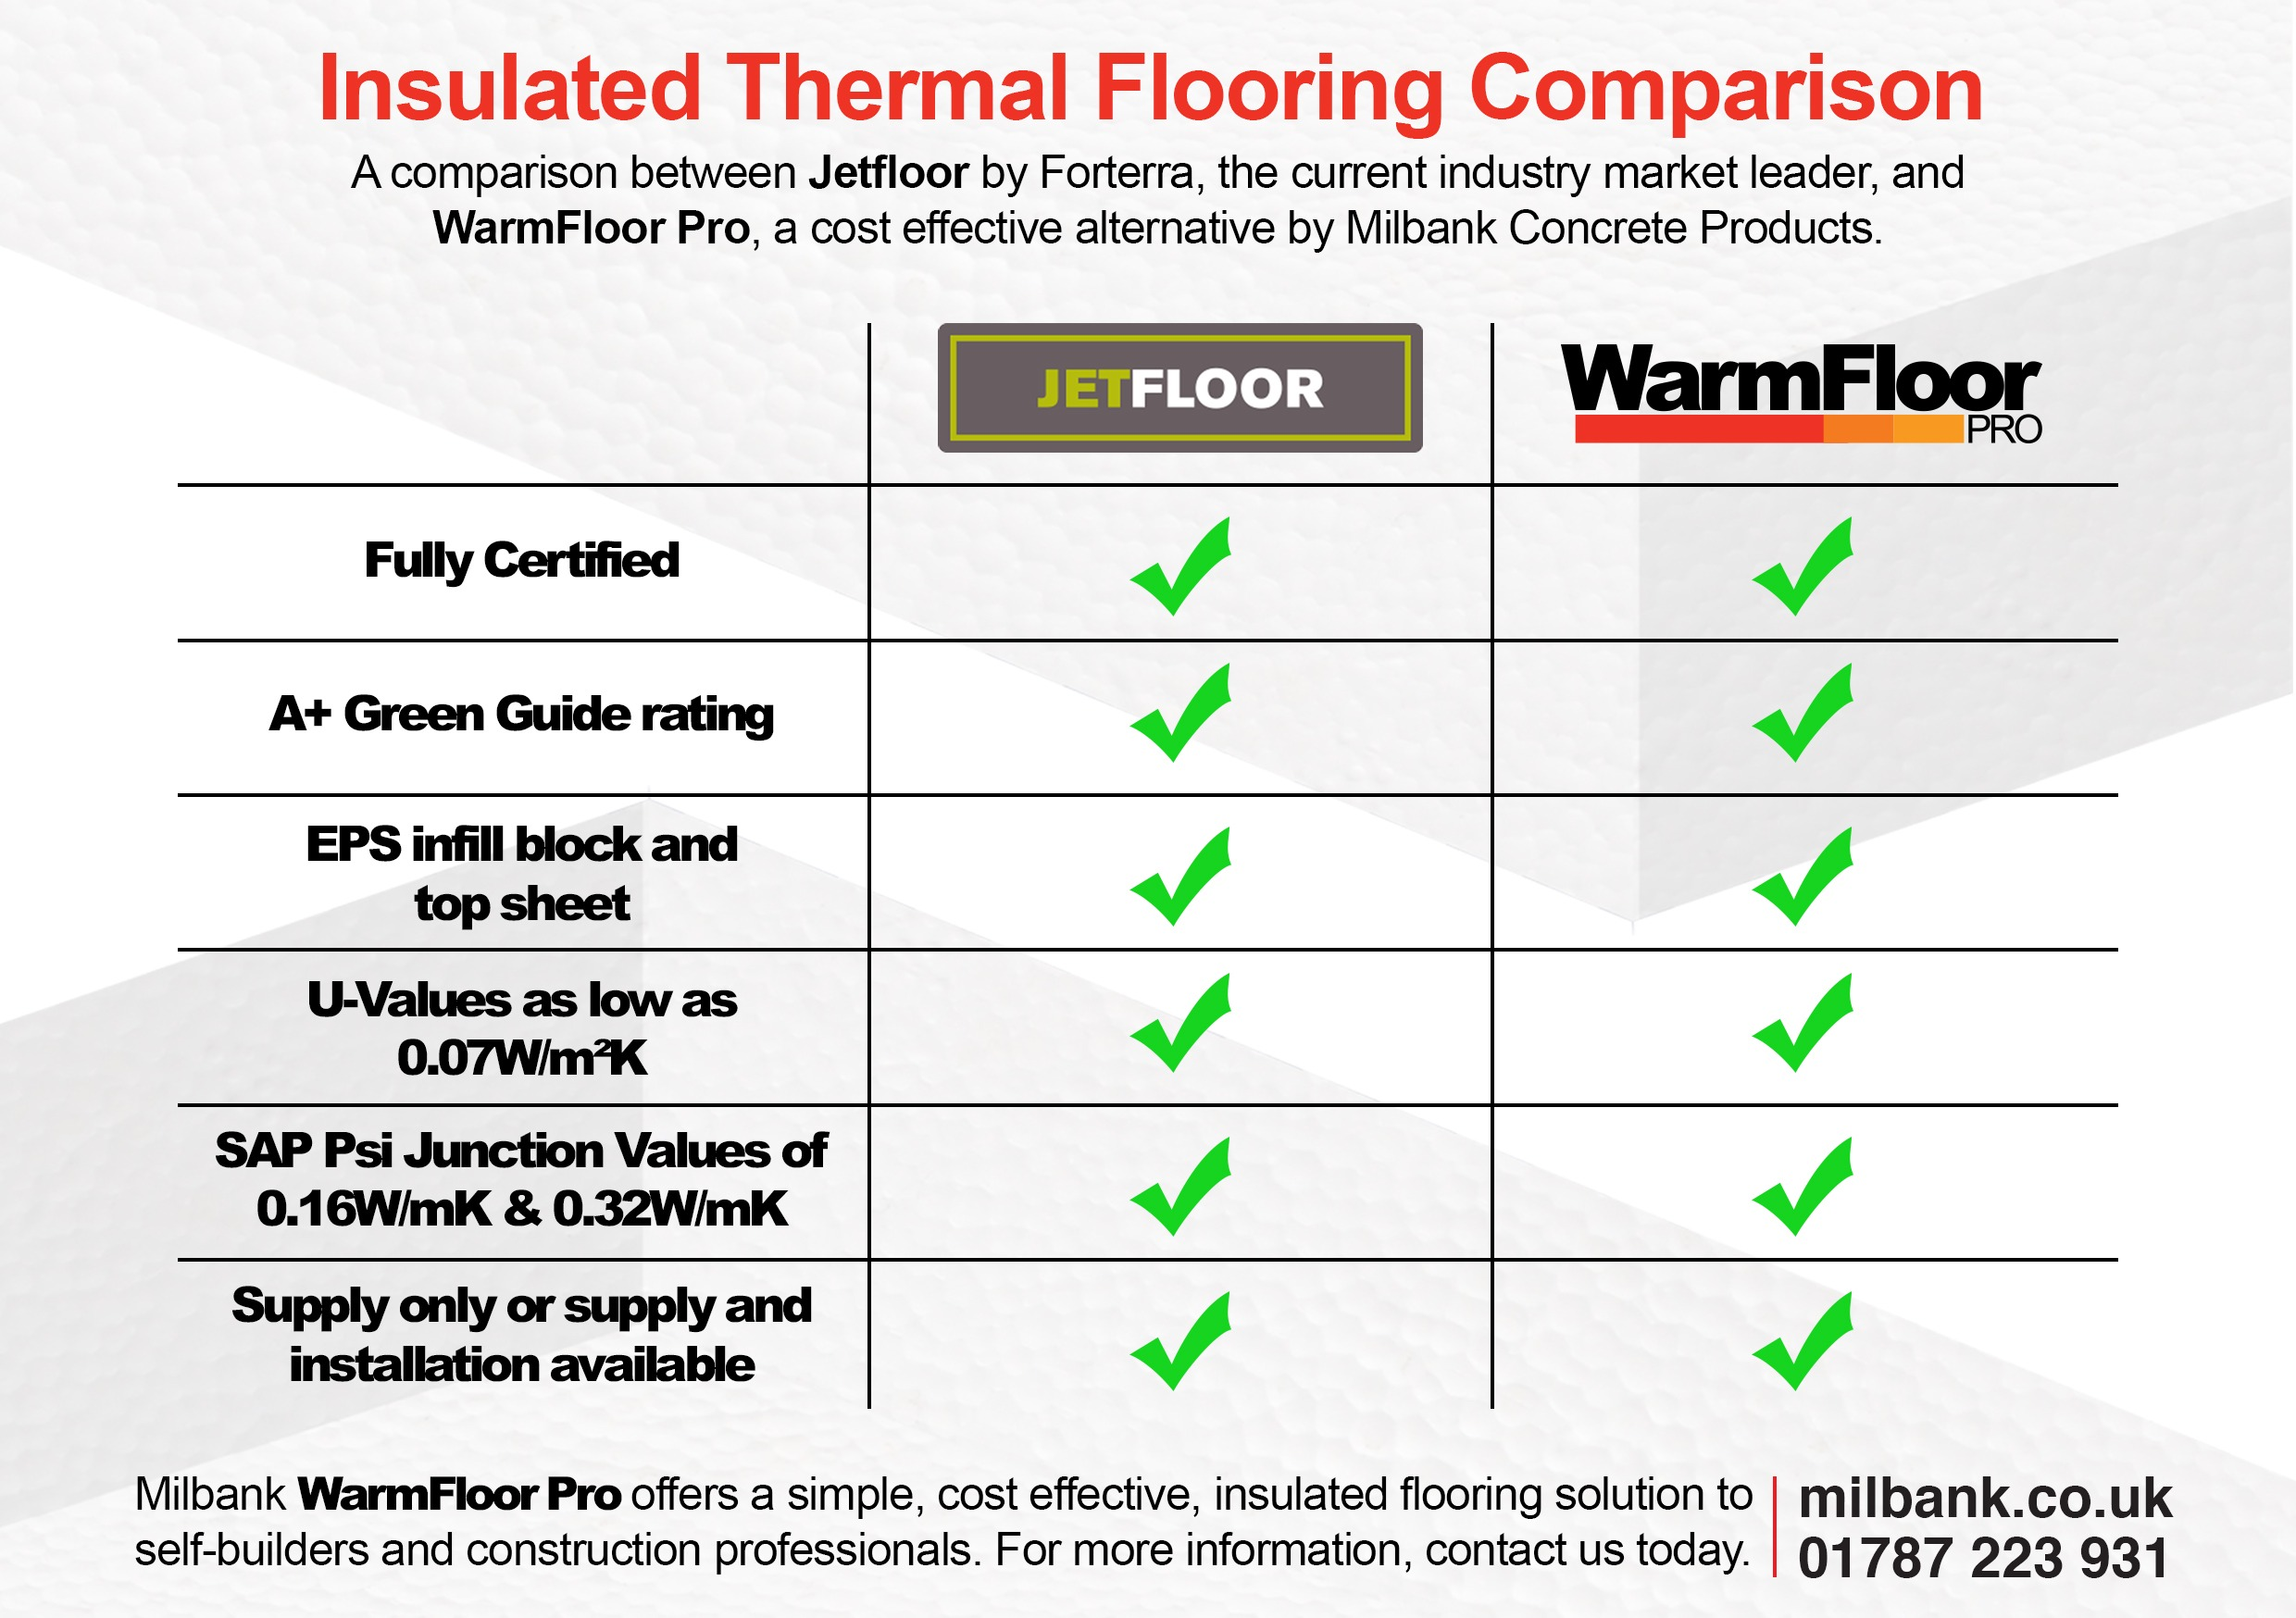 WarmFloor Pro Comparison